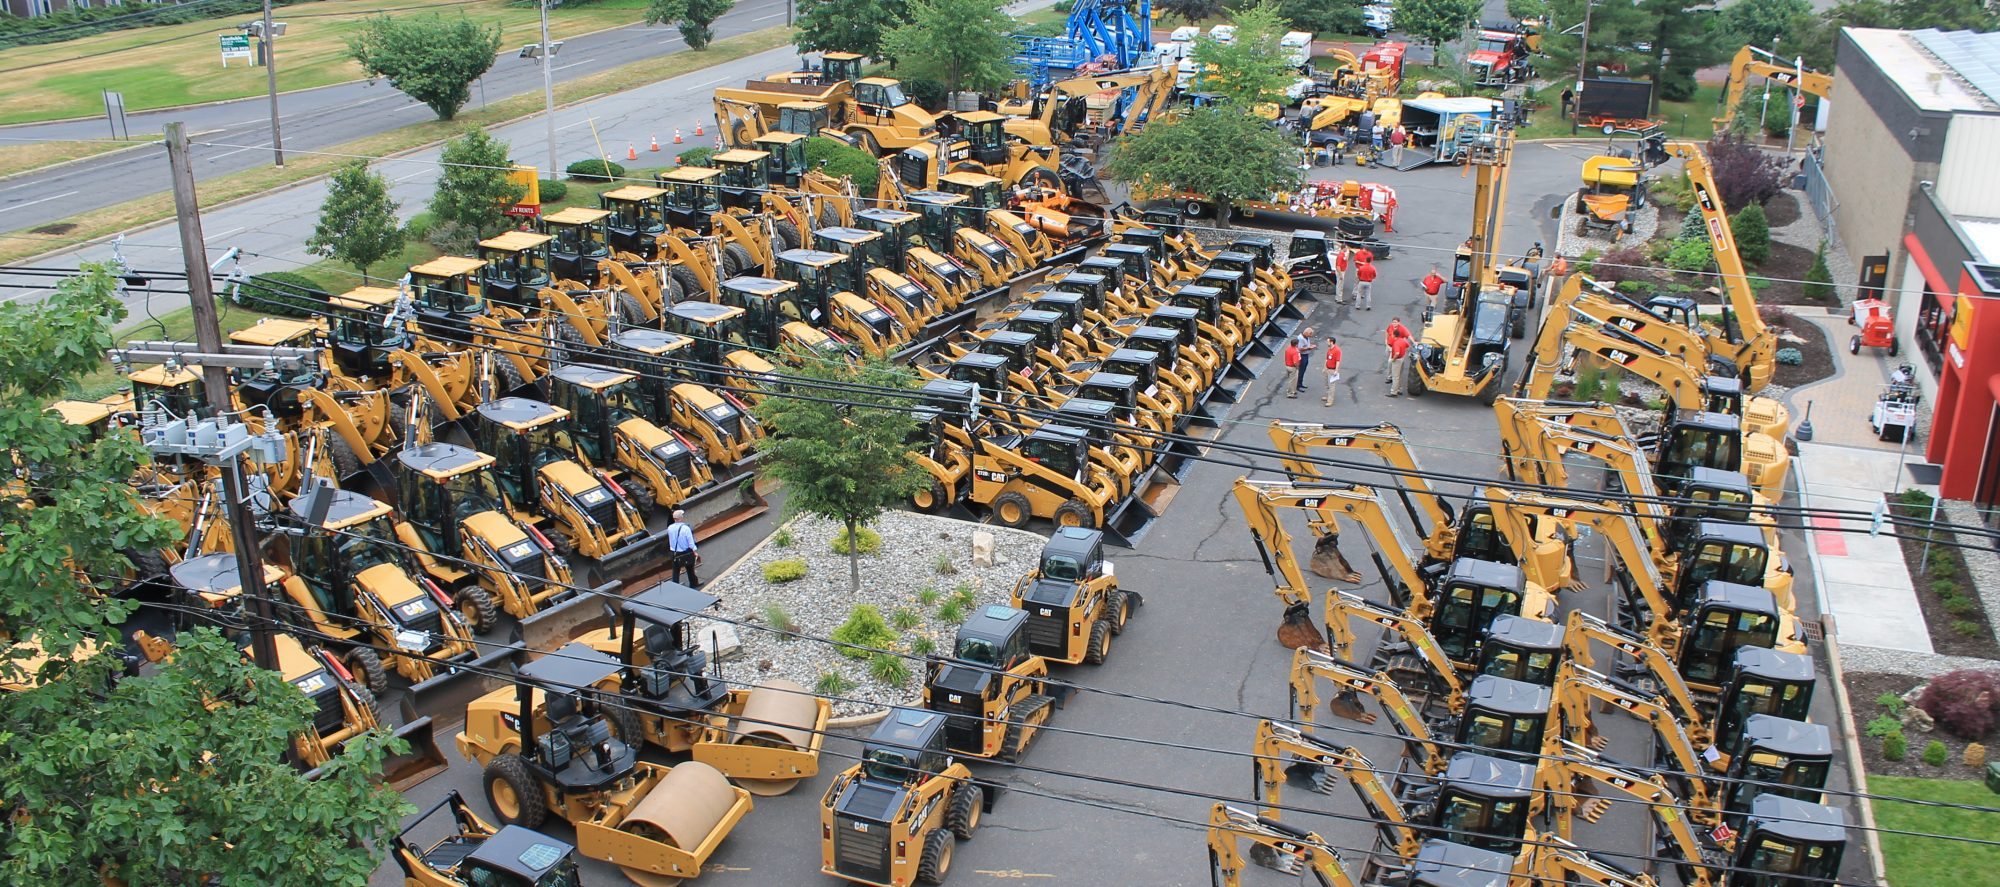 Buy & Rent Used Cat Equipment for Sale - NJ, PA, Staten Island, and